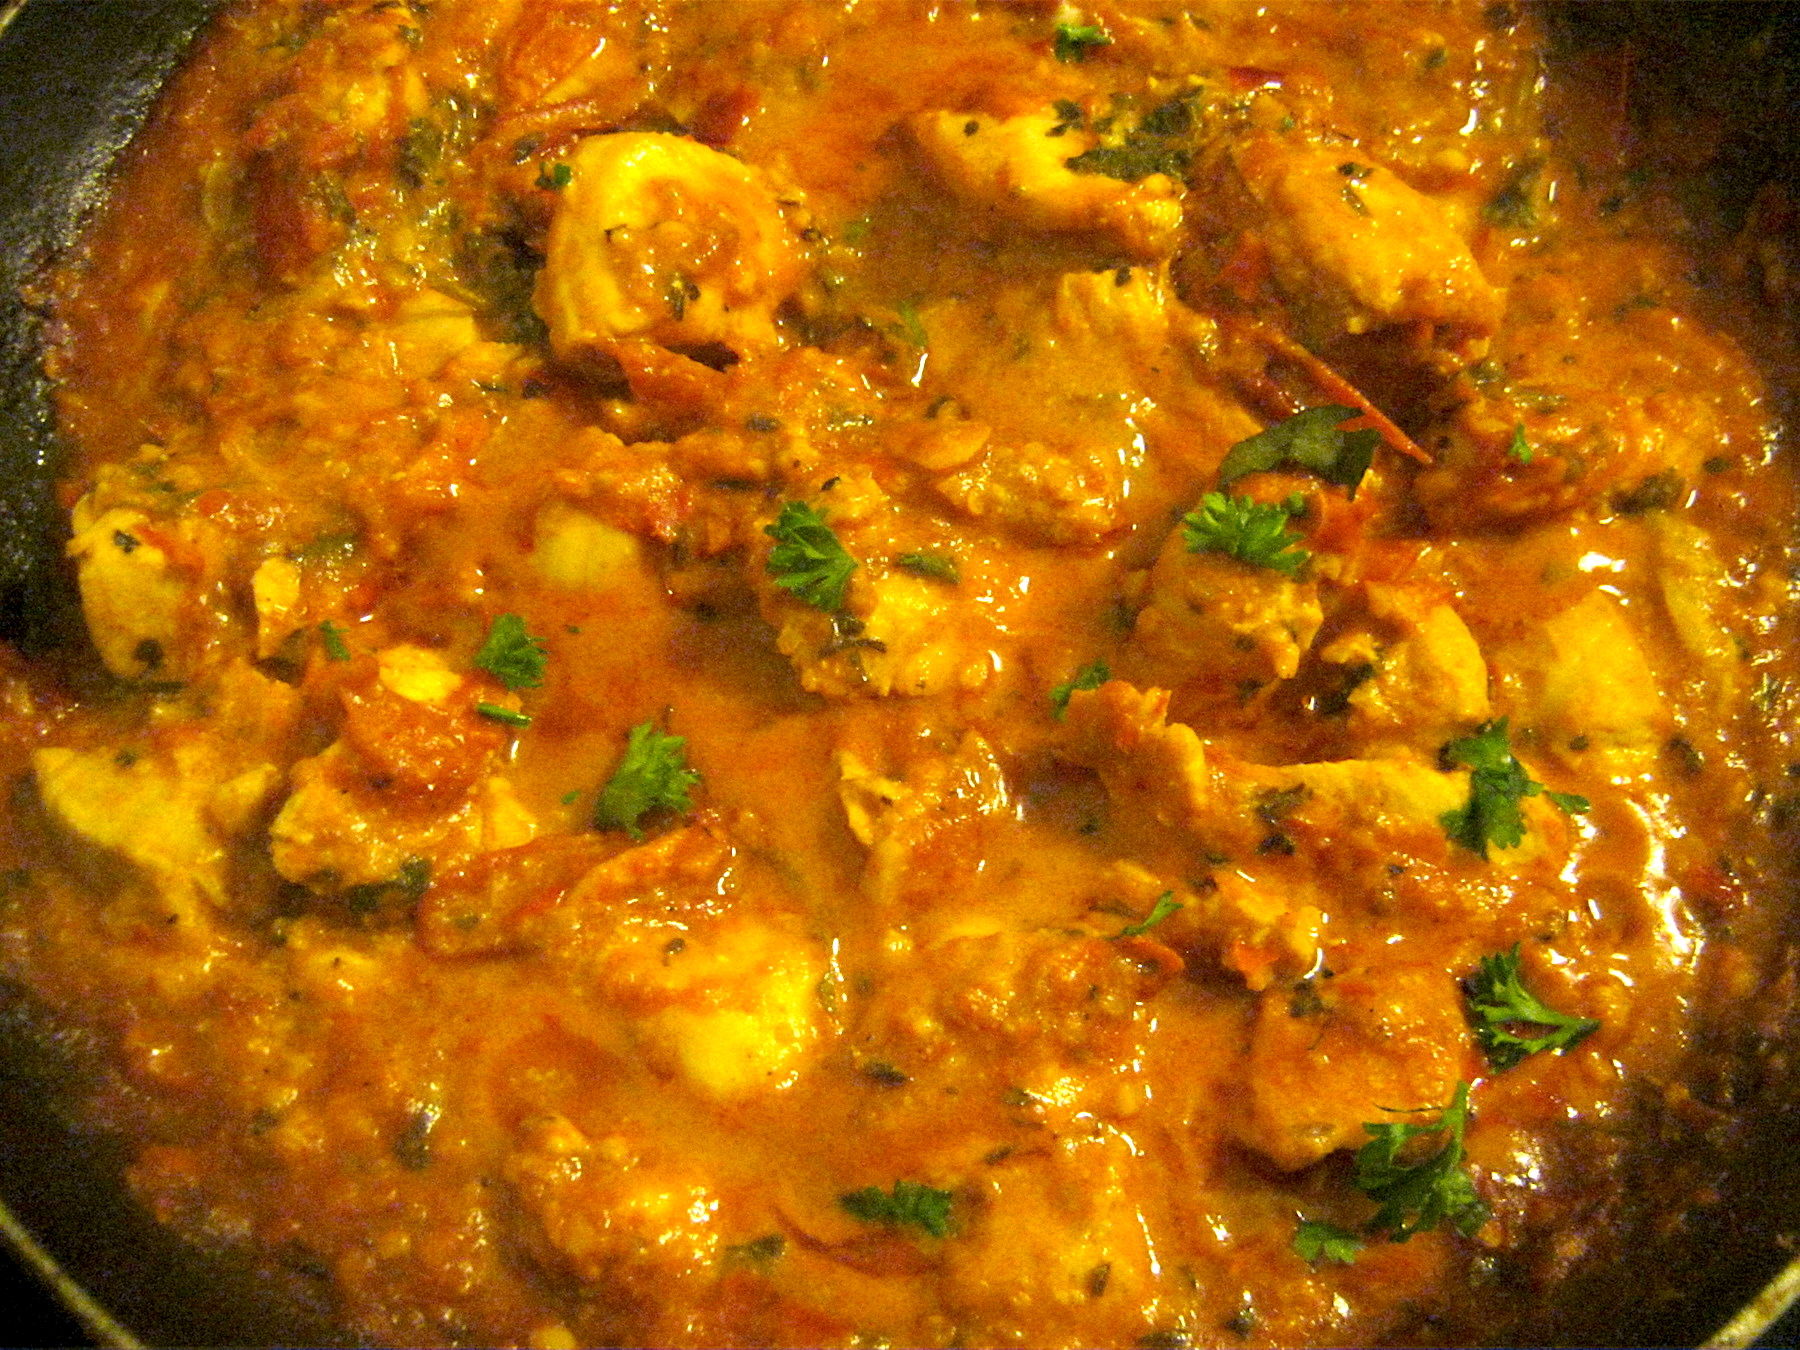 Chicken tikka masala in a frying pan